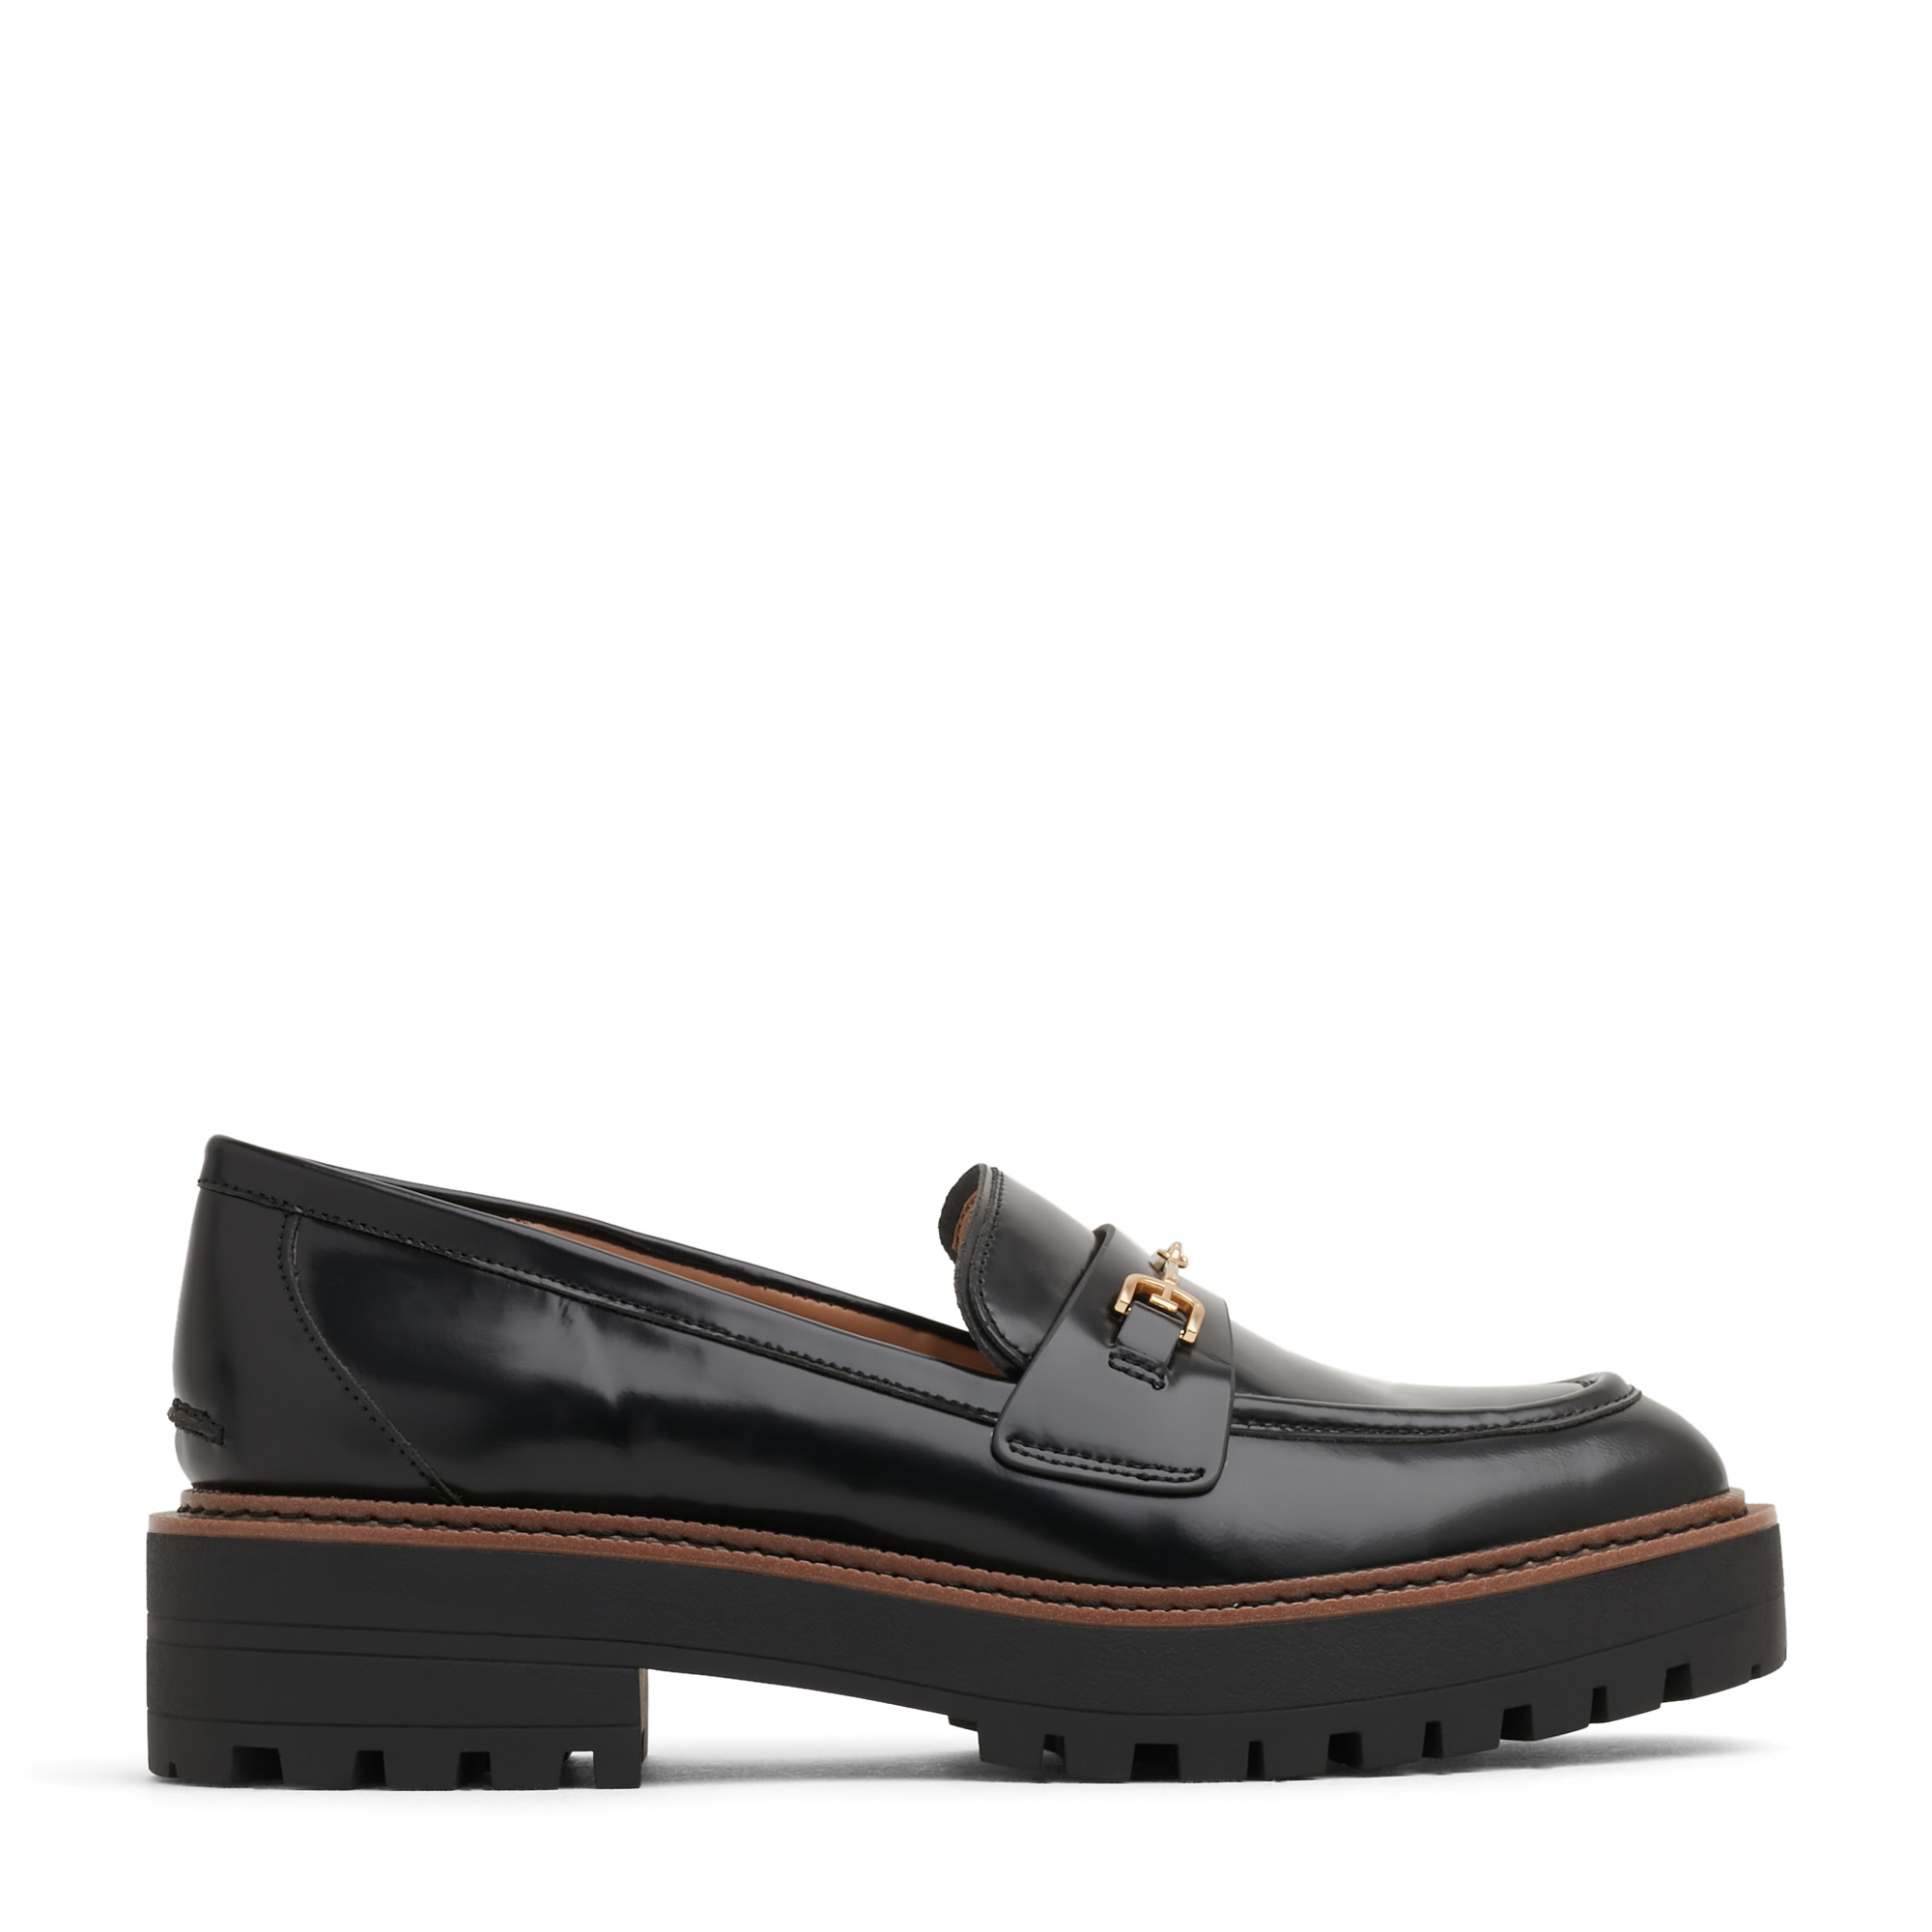 Laurs loafers